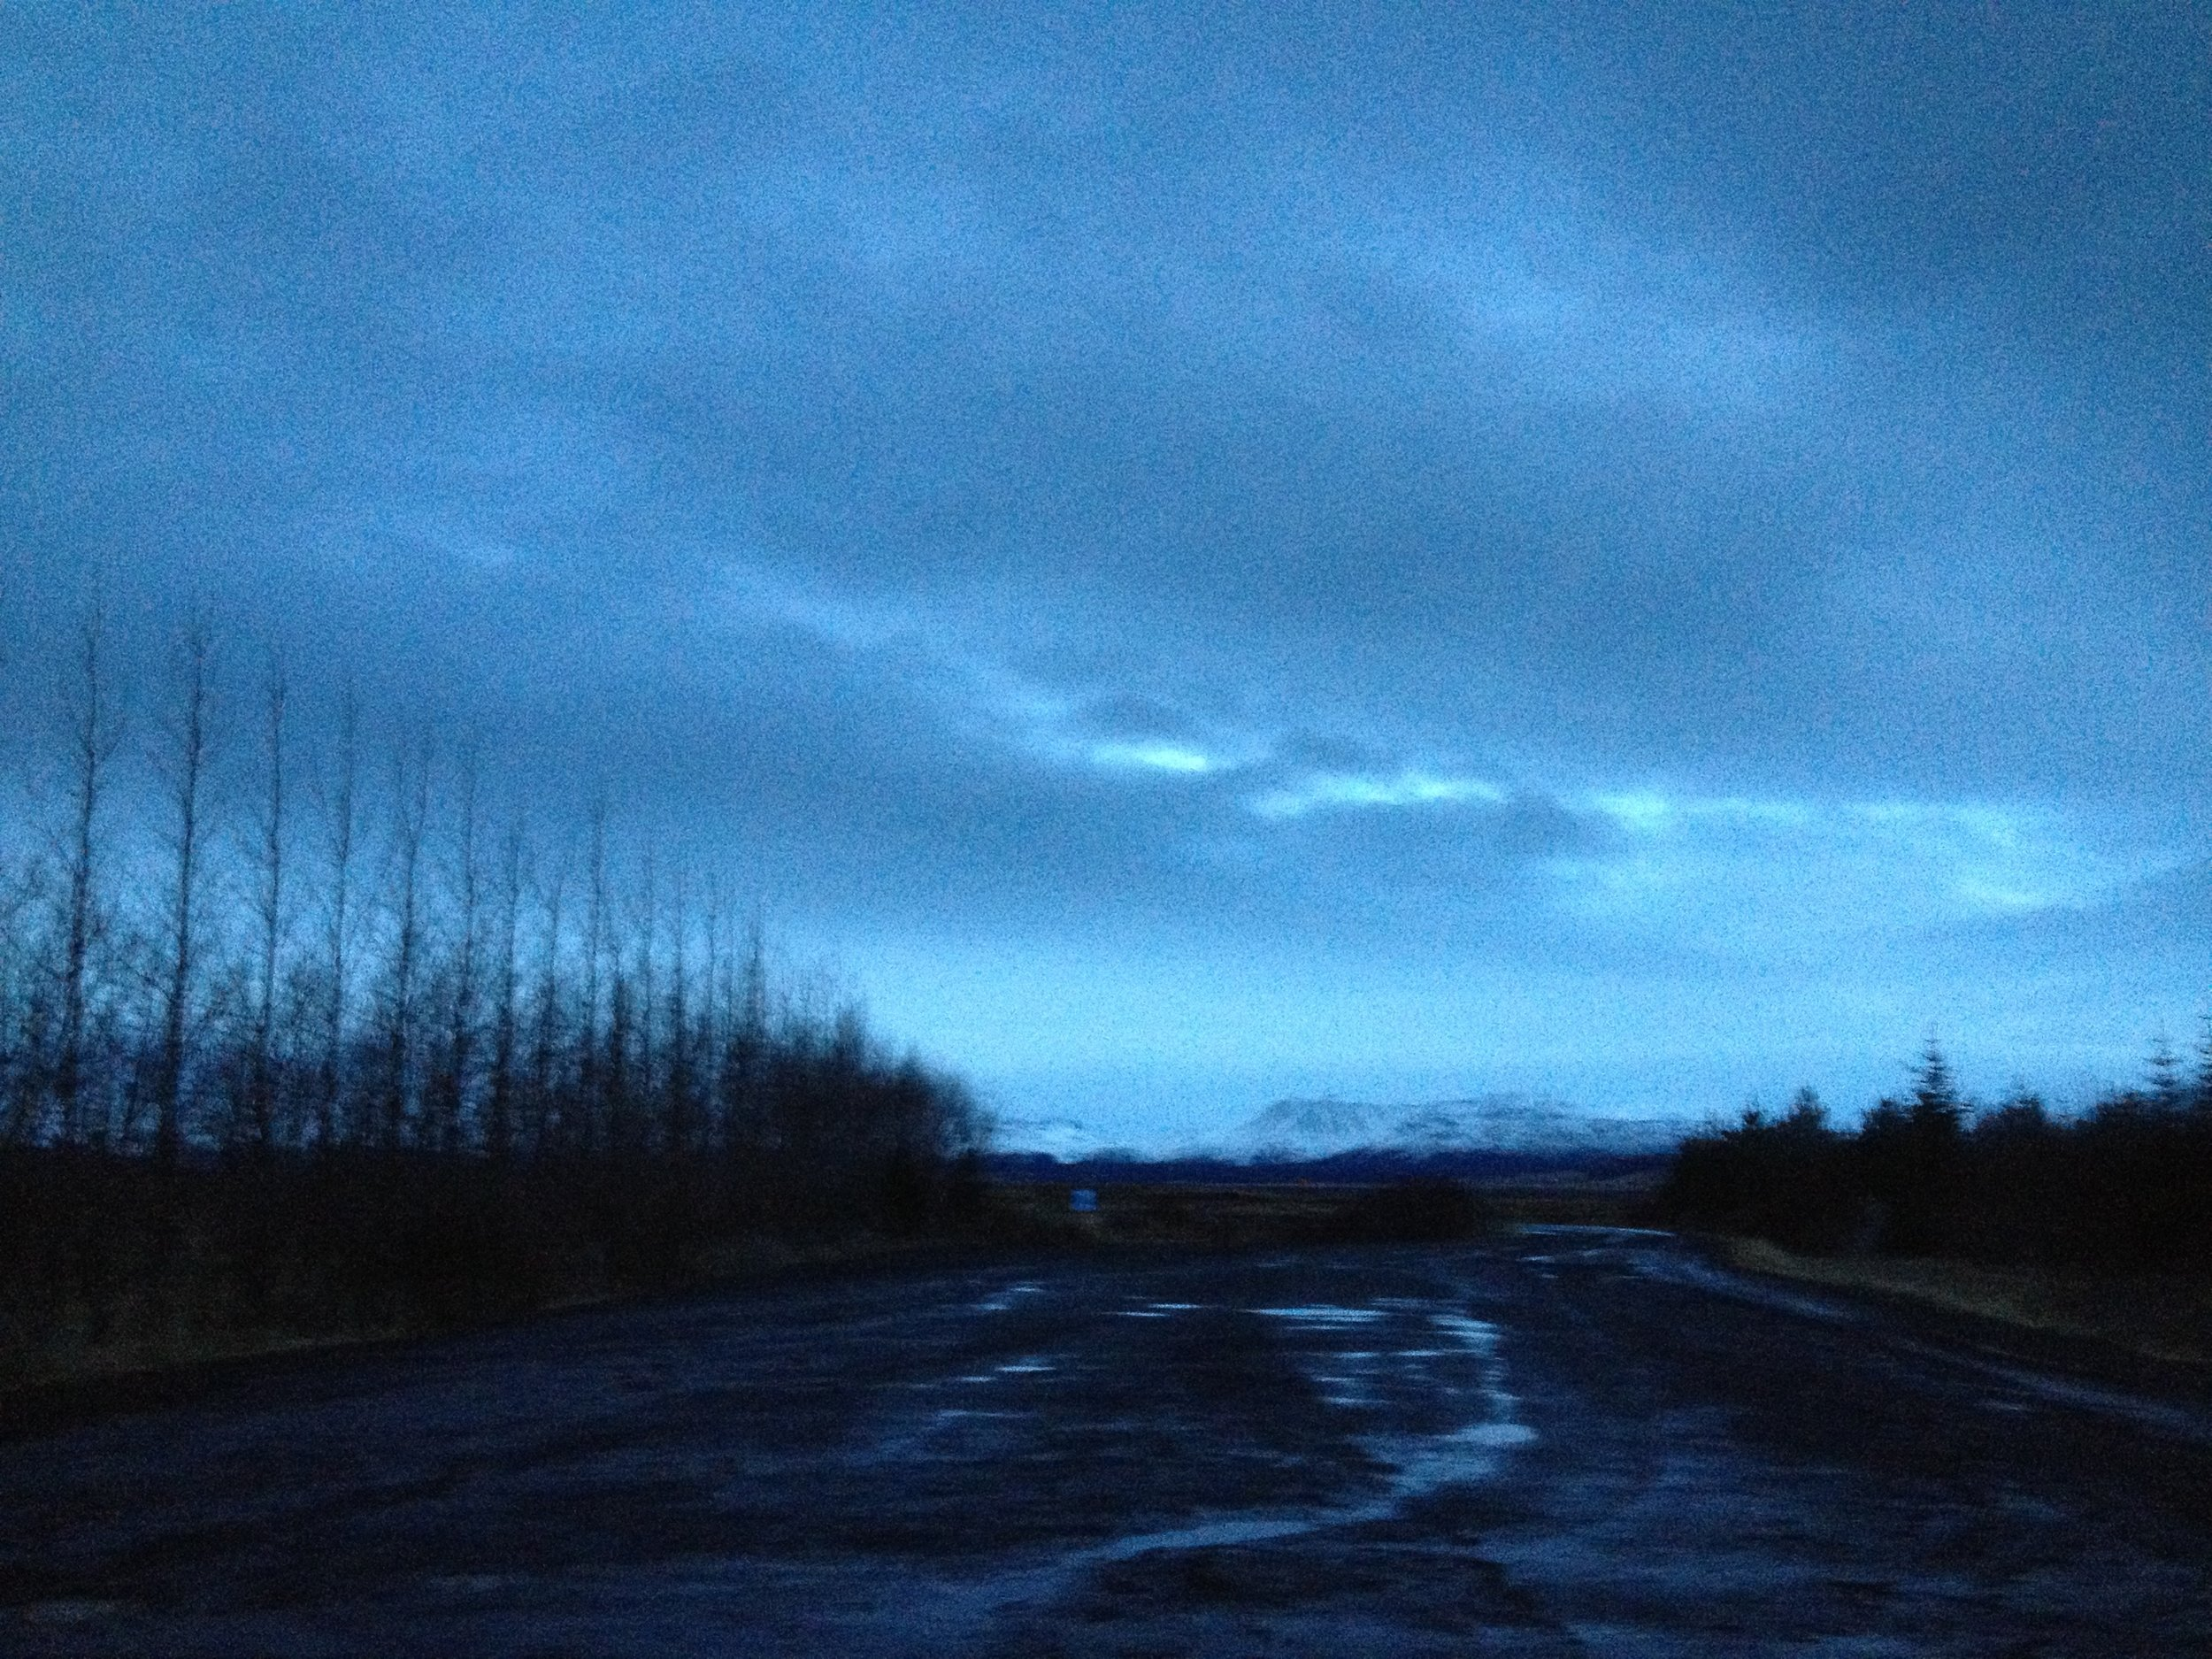 early morning pic of Iceland for no reason